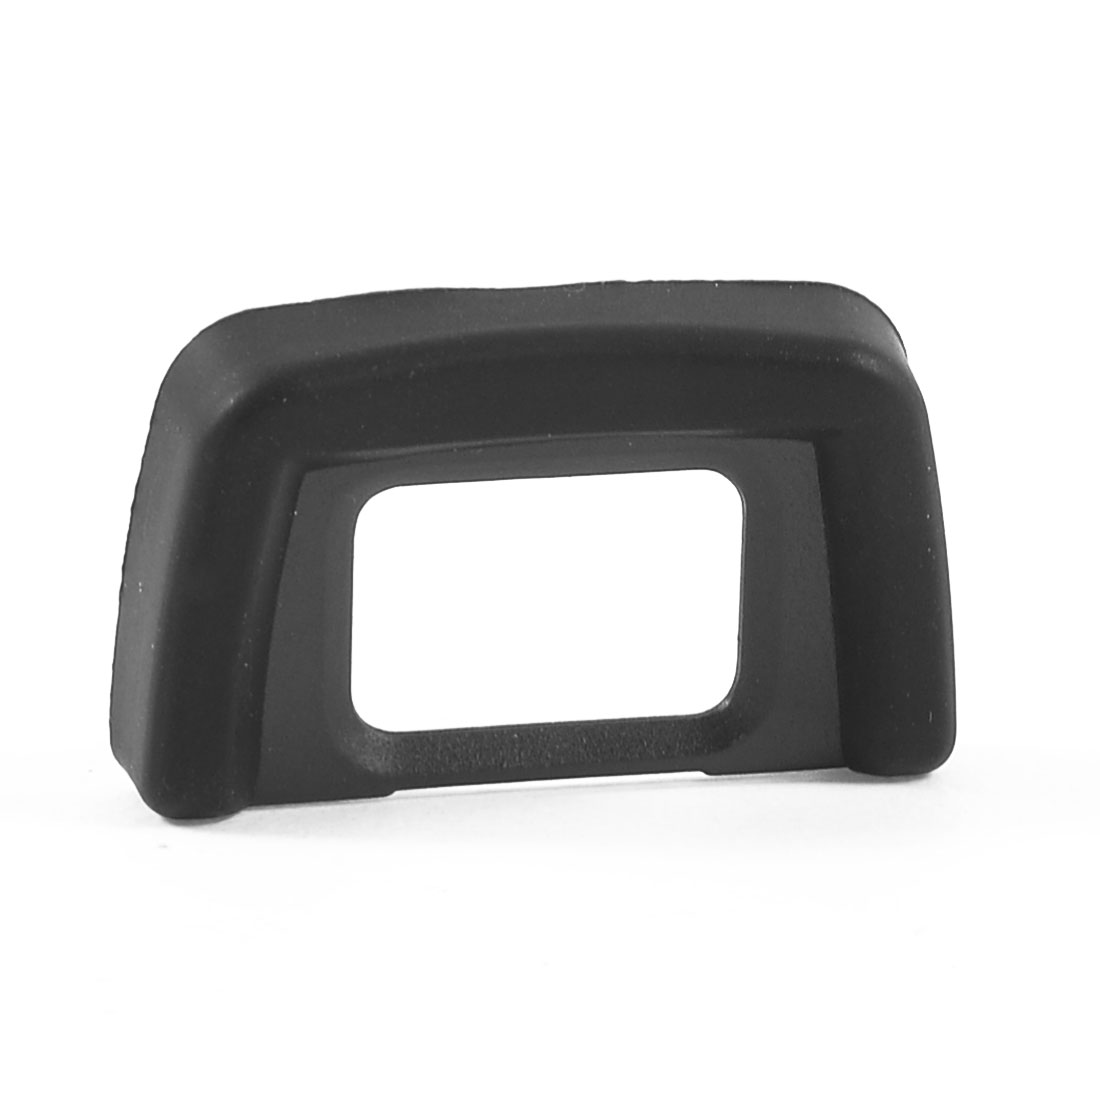 Rubber Coated Plastic Camera Eyecup Eyepiece for Nikon D3000 D5000